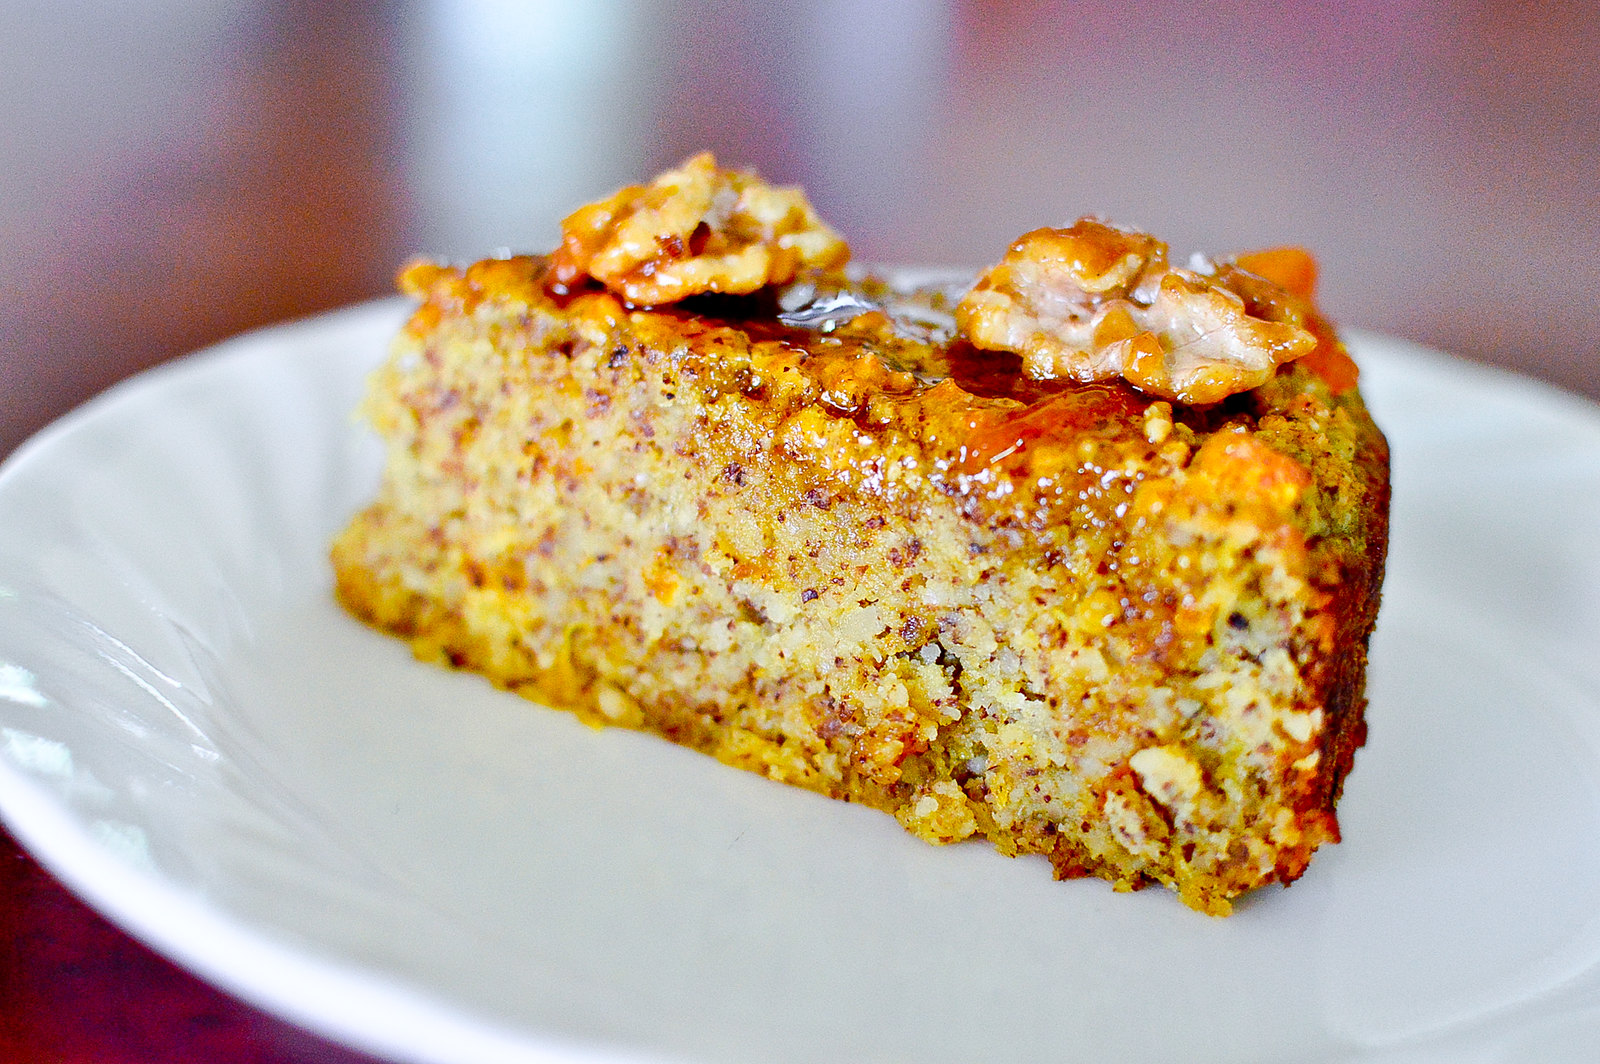 Flourless Orange & Hazelnut Cake